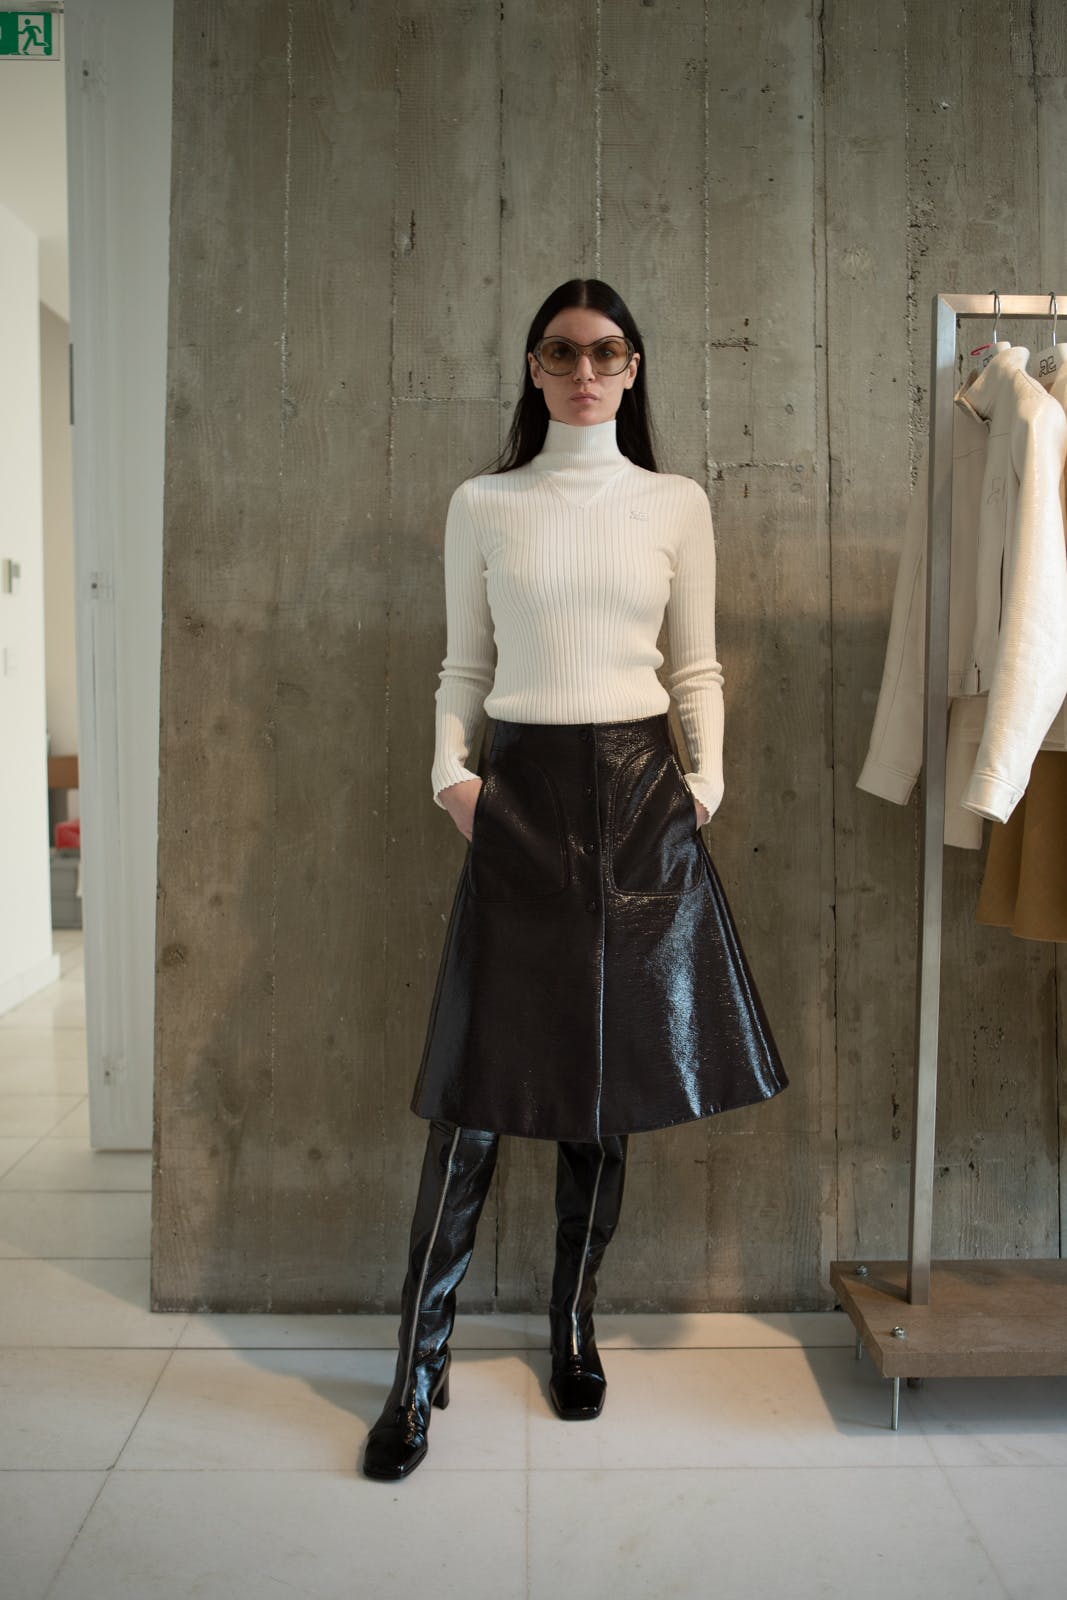 courreges fall winter 2020 runway show backstage womenswear showroom pre order trunk show leather skirt